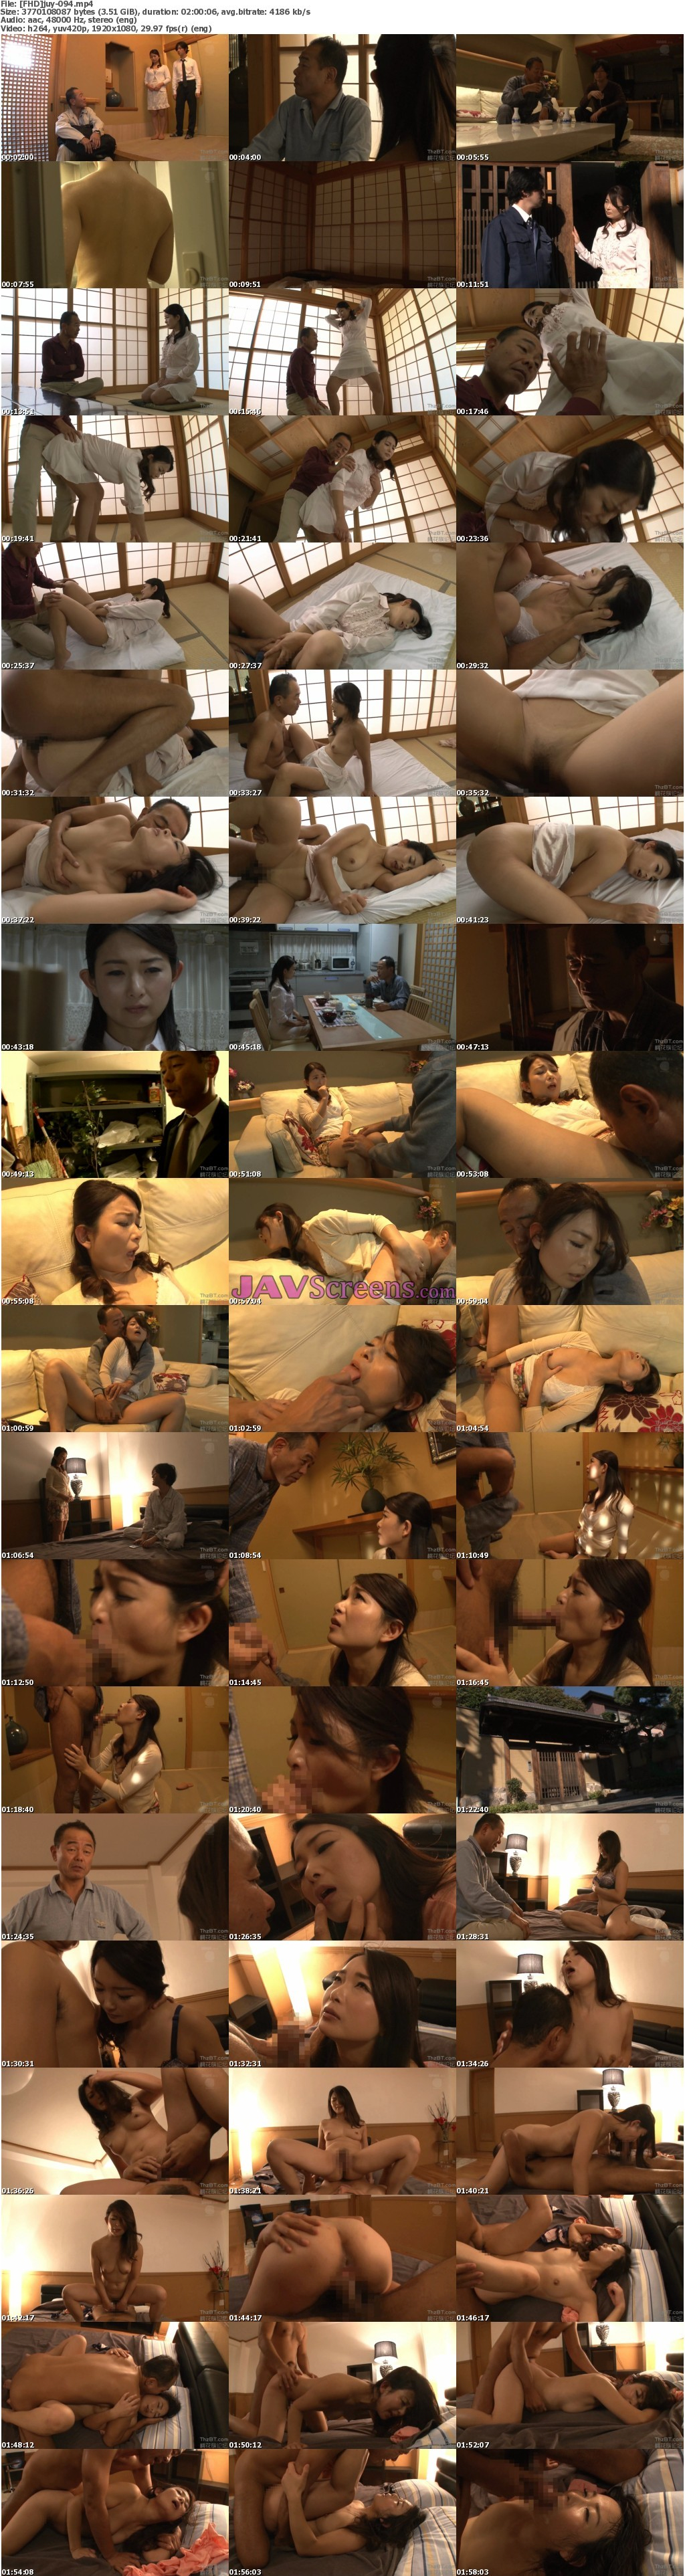 JUY-094.jpg - JAV Screenshot